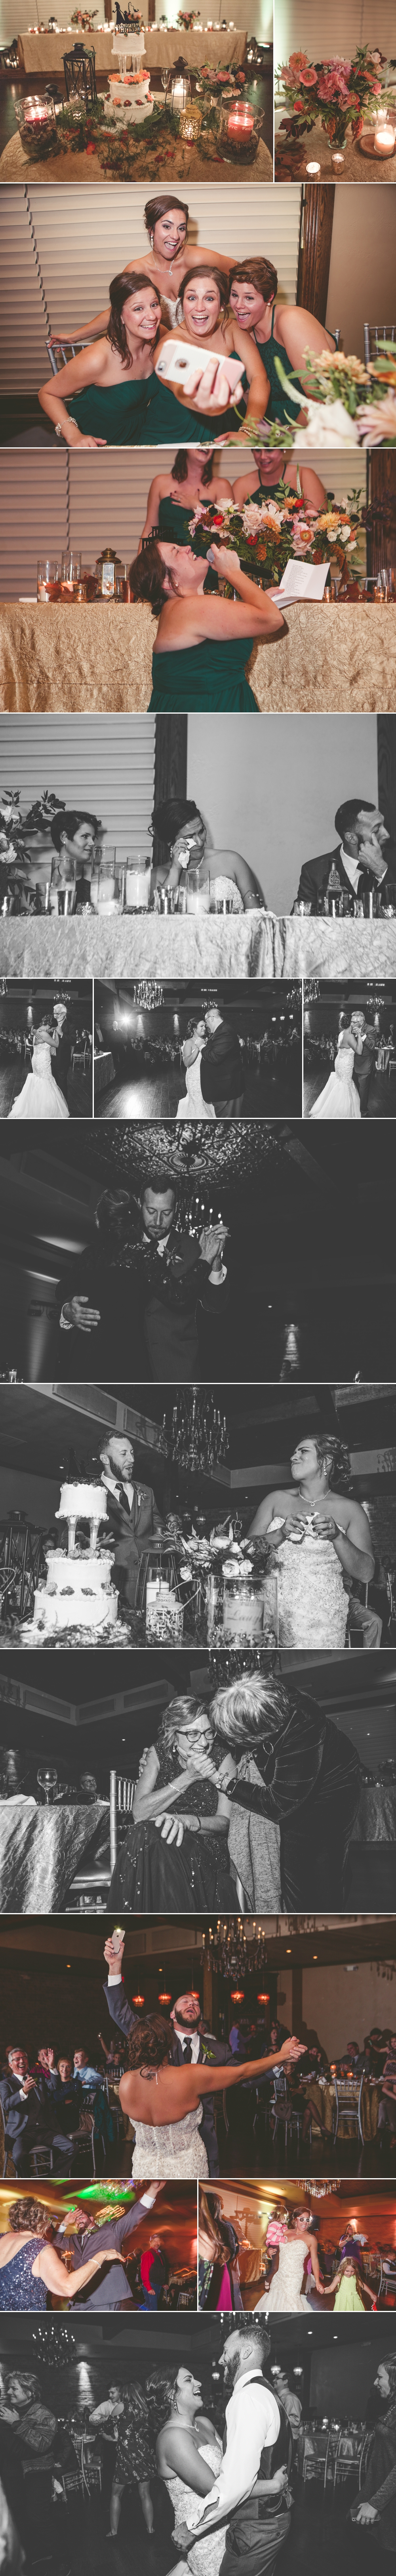 jason_domingues_photography_best_kansas_city_photographer_kc_weddings_aspen_room_stanley_0004.JPG